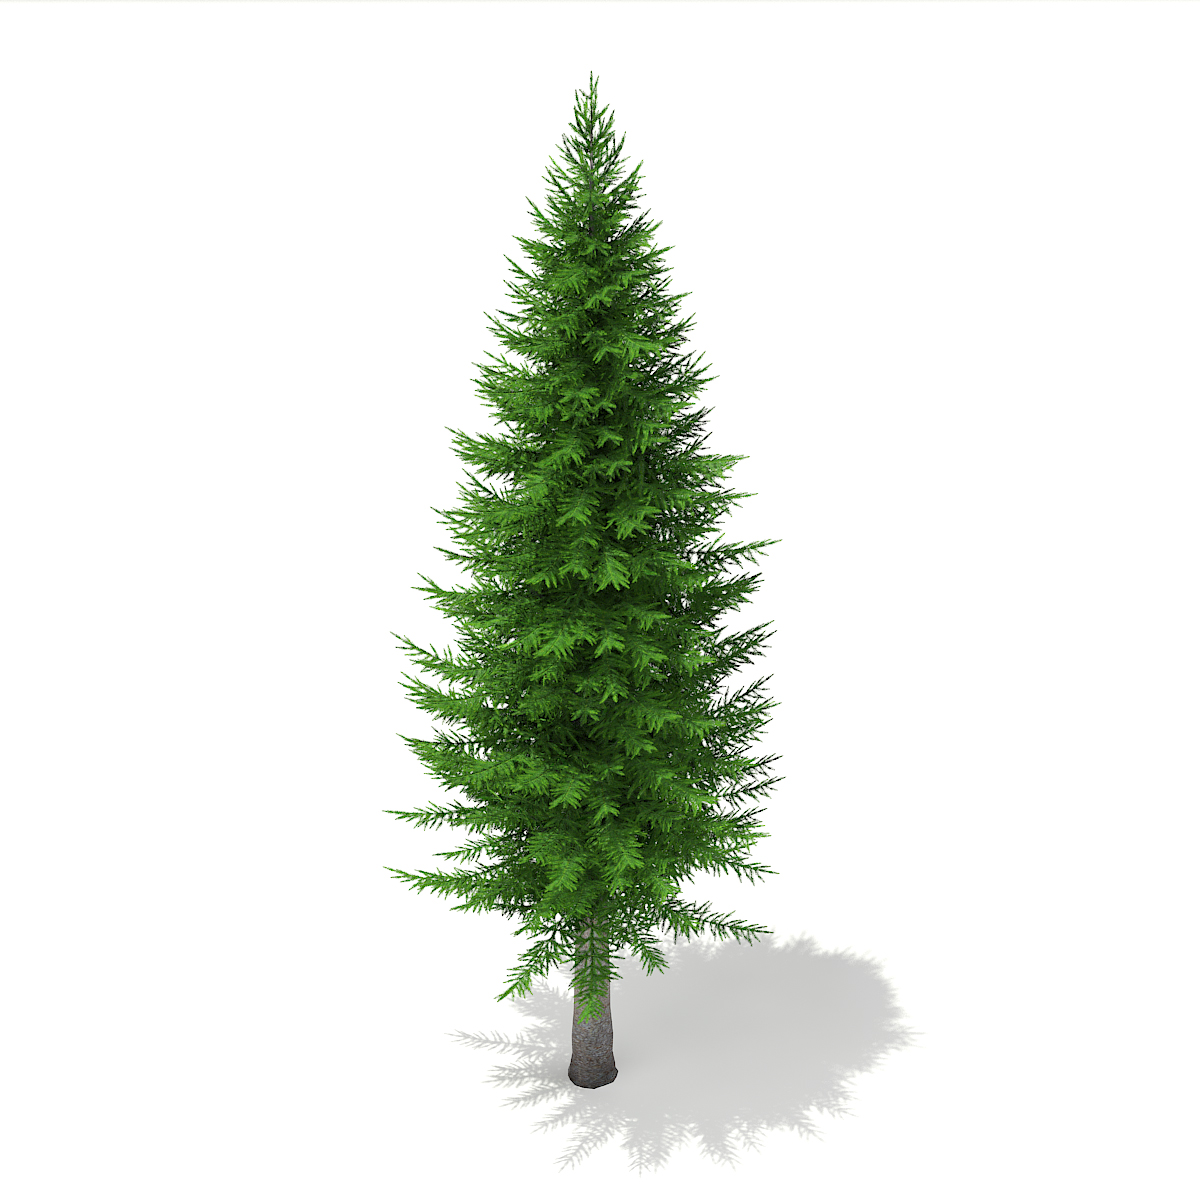 Norway Spruce (Picea abies) 11.3m.